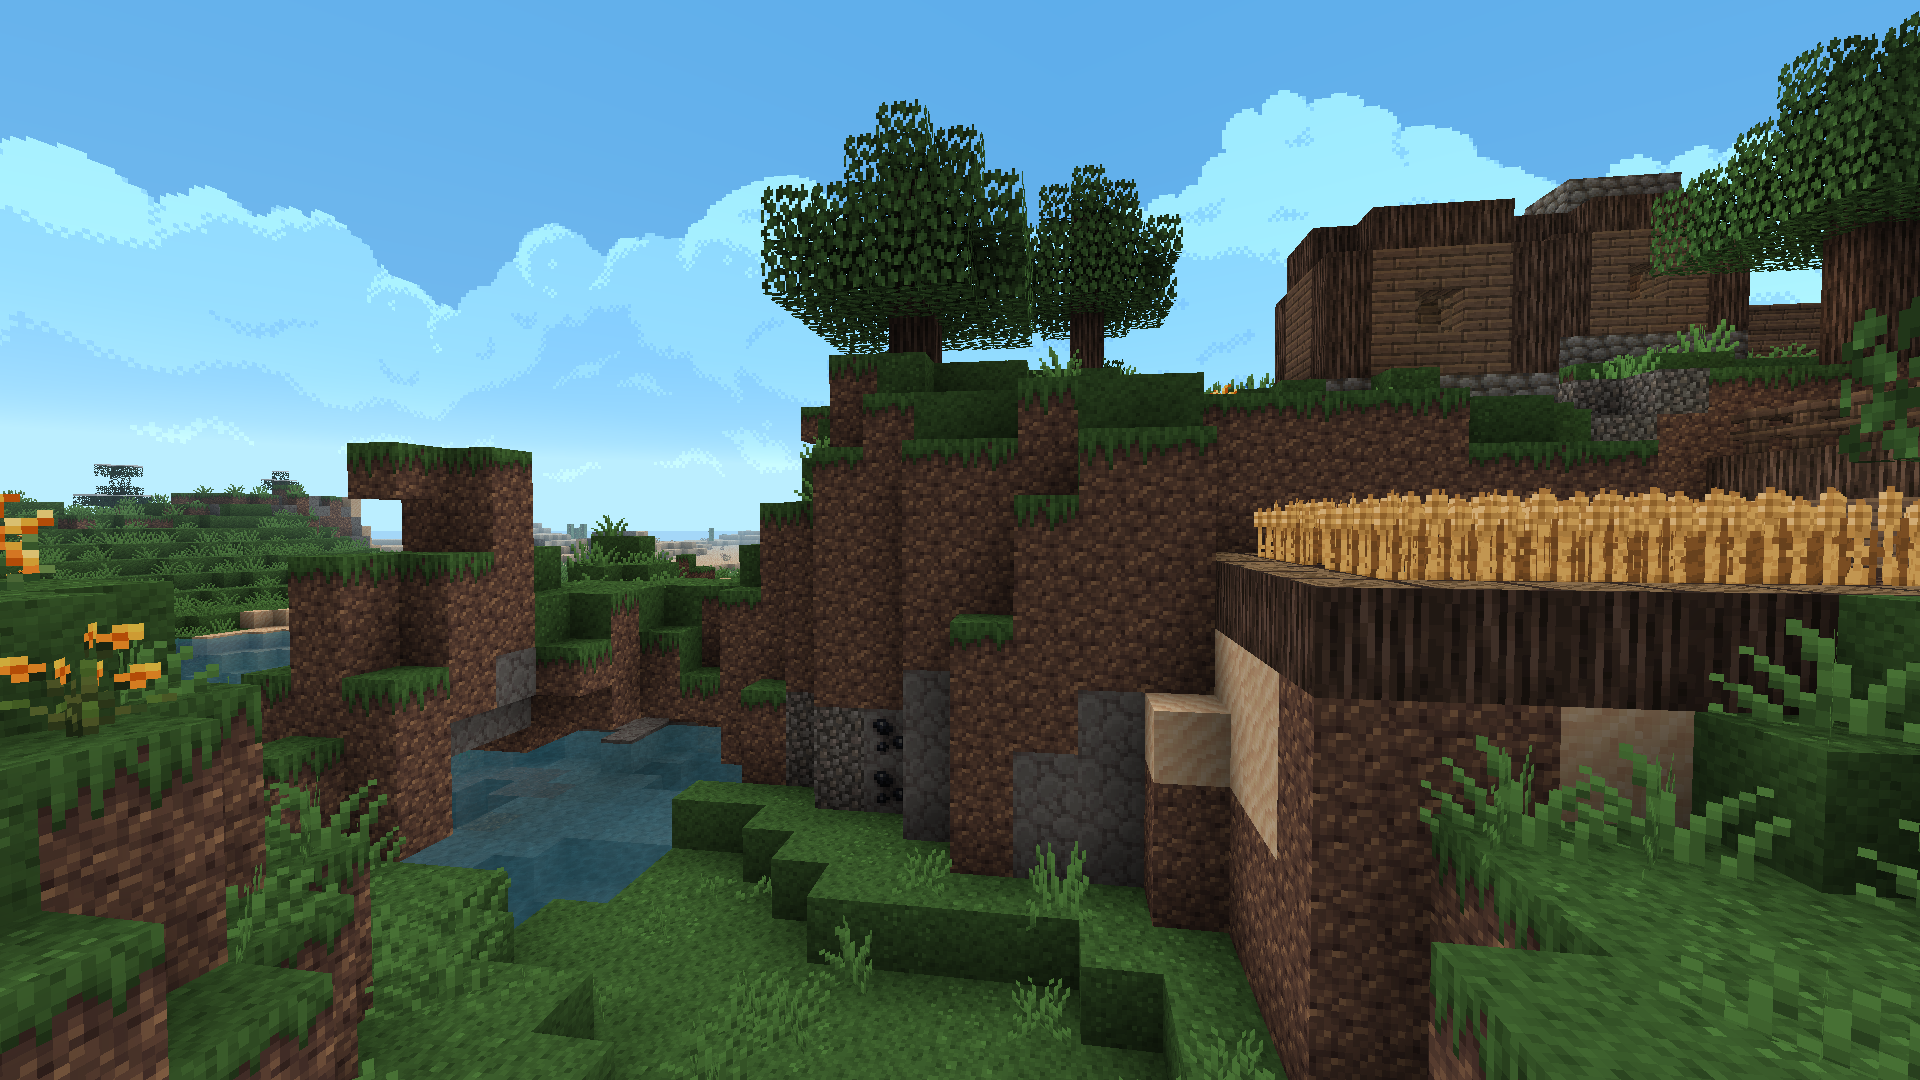 http://minecraft-forum.net/wp-content/uploads/2012/10/c4e27__Pixel-perfection-texture-pack-3.png